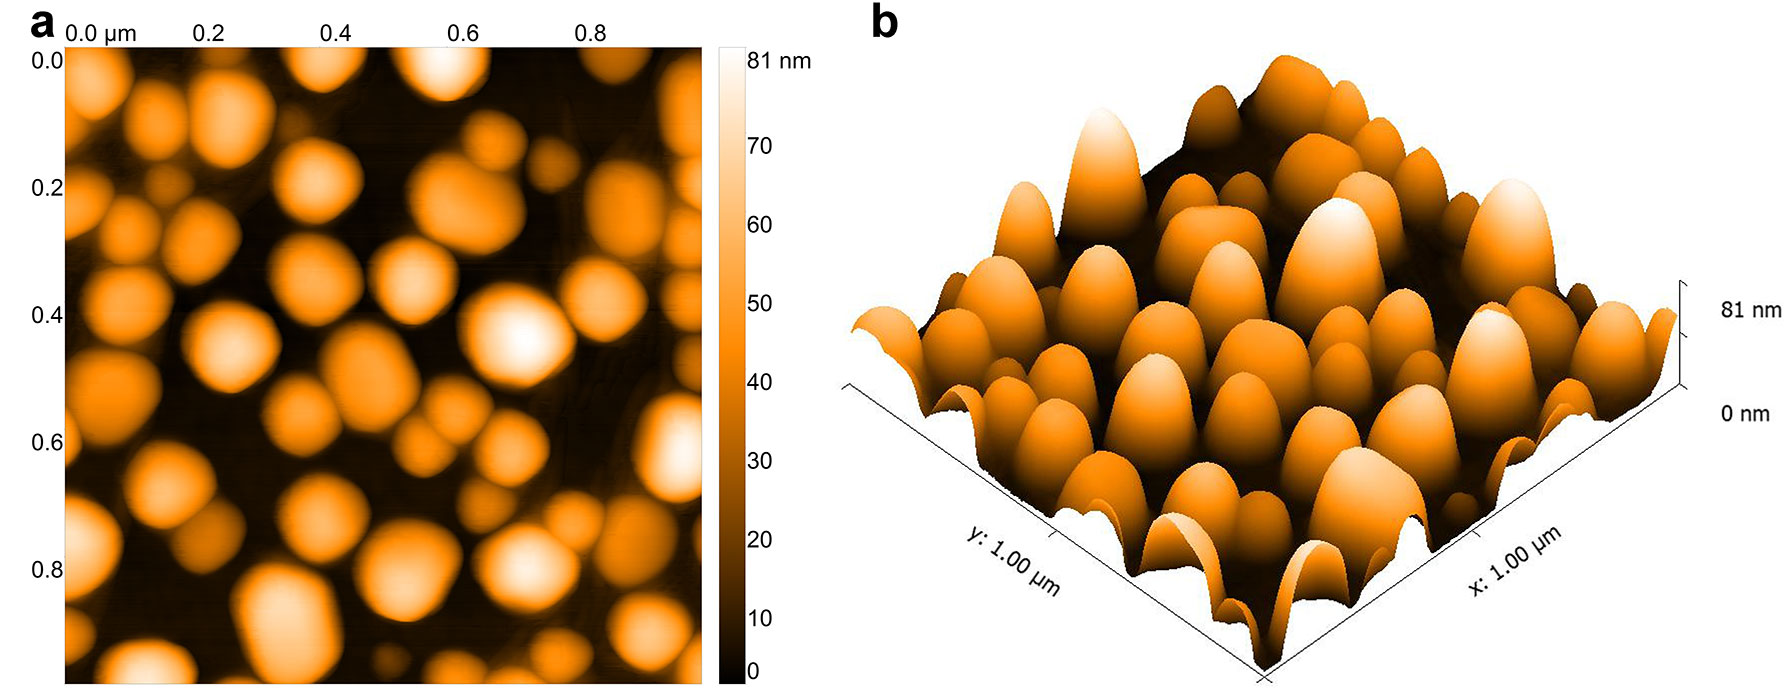 AFM images of LSPR gold nanochips